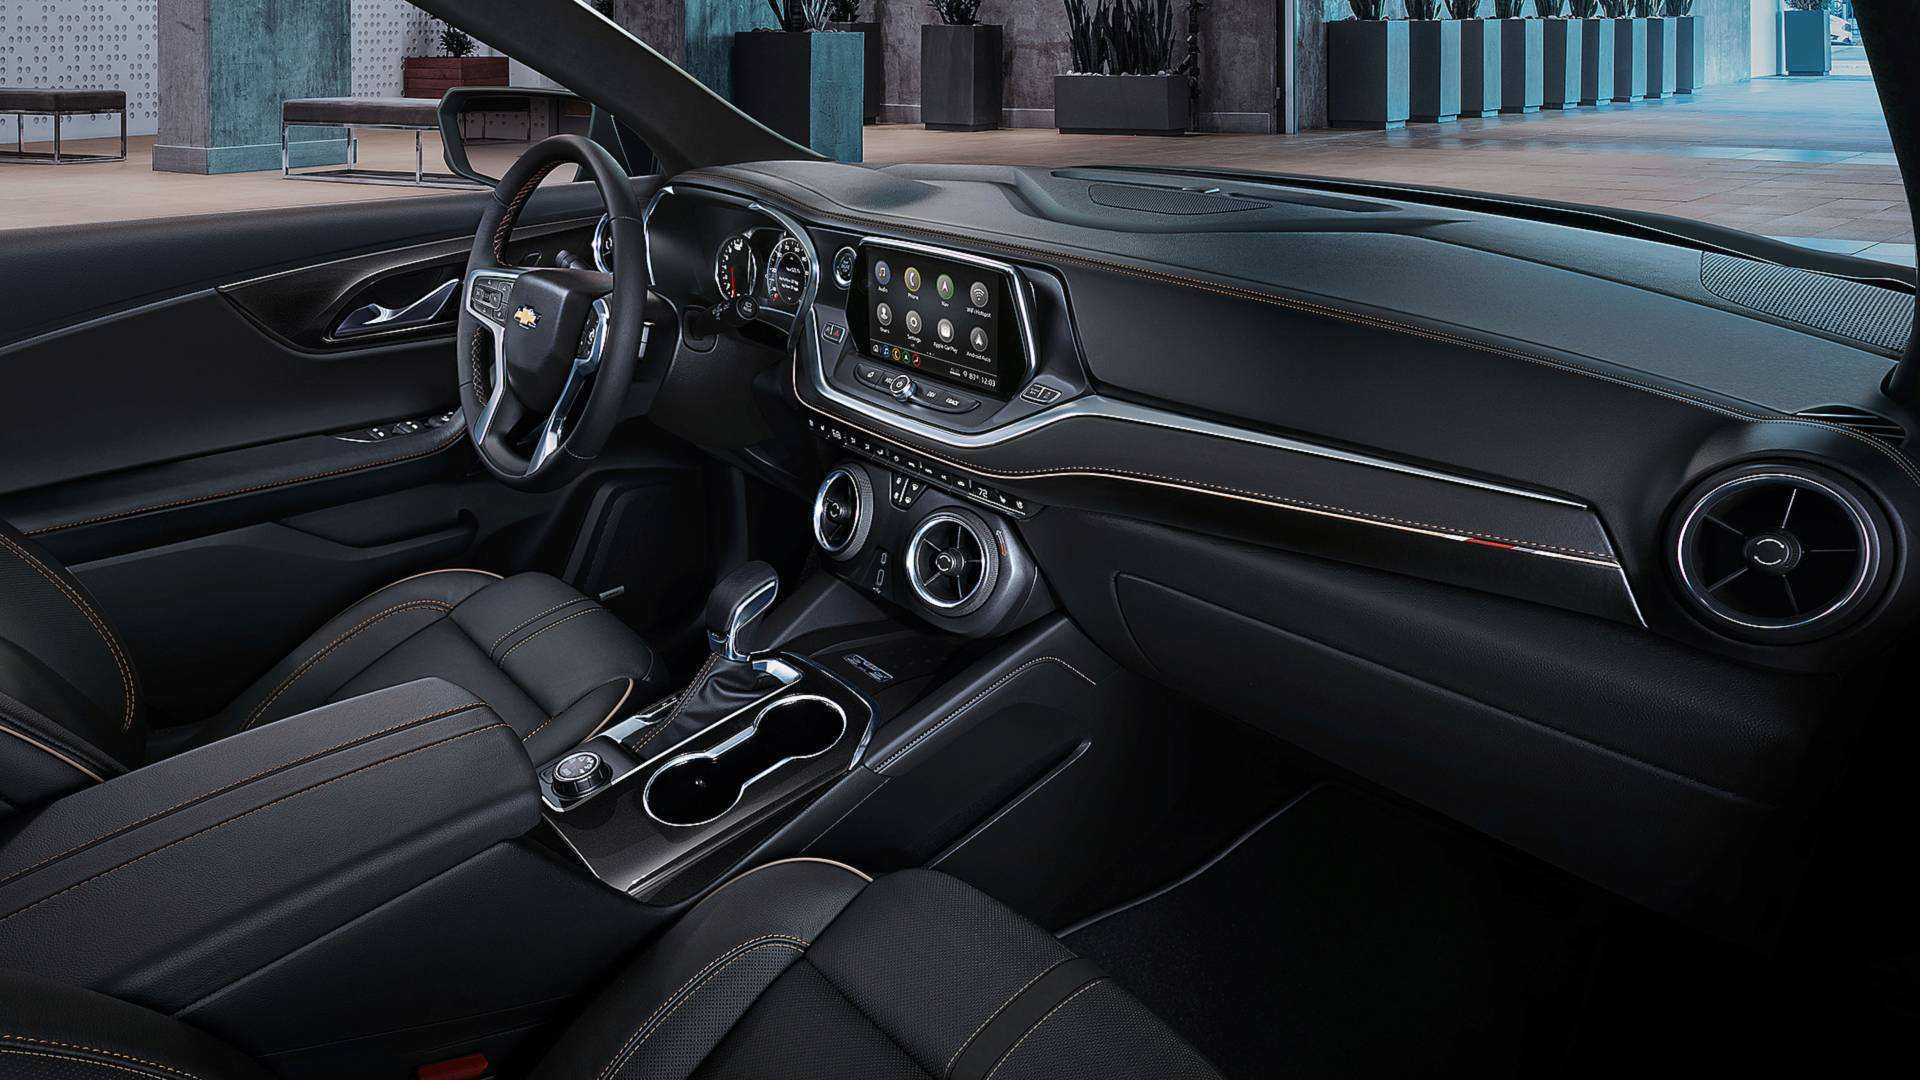 68 All New Chevrolet Blazer 2020 Interior New Review